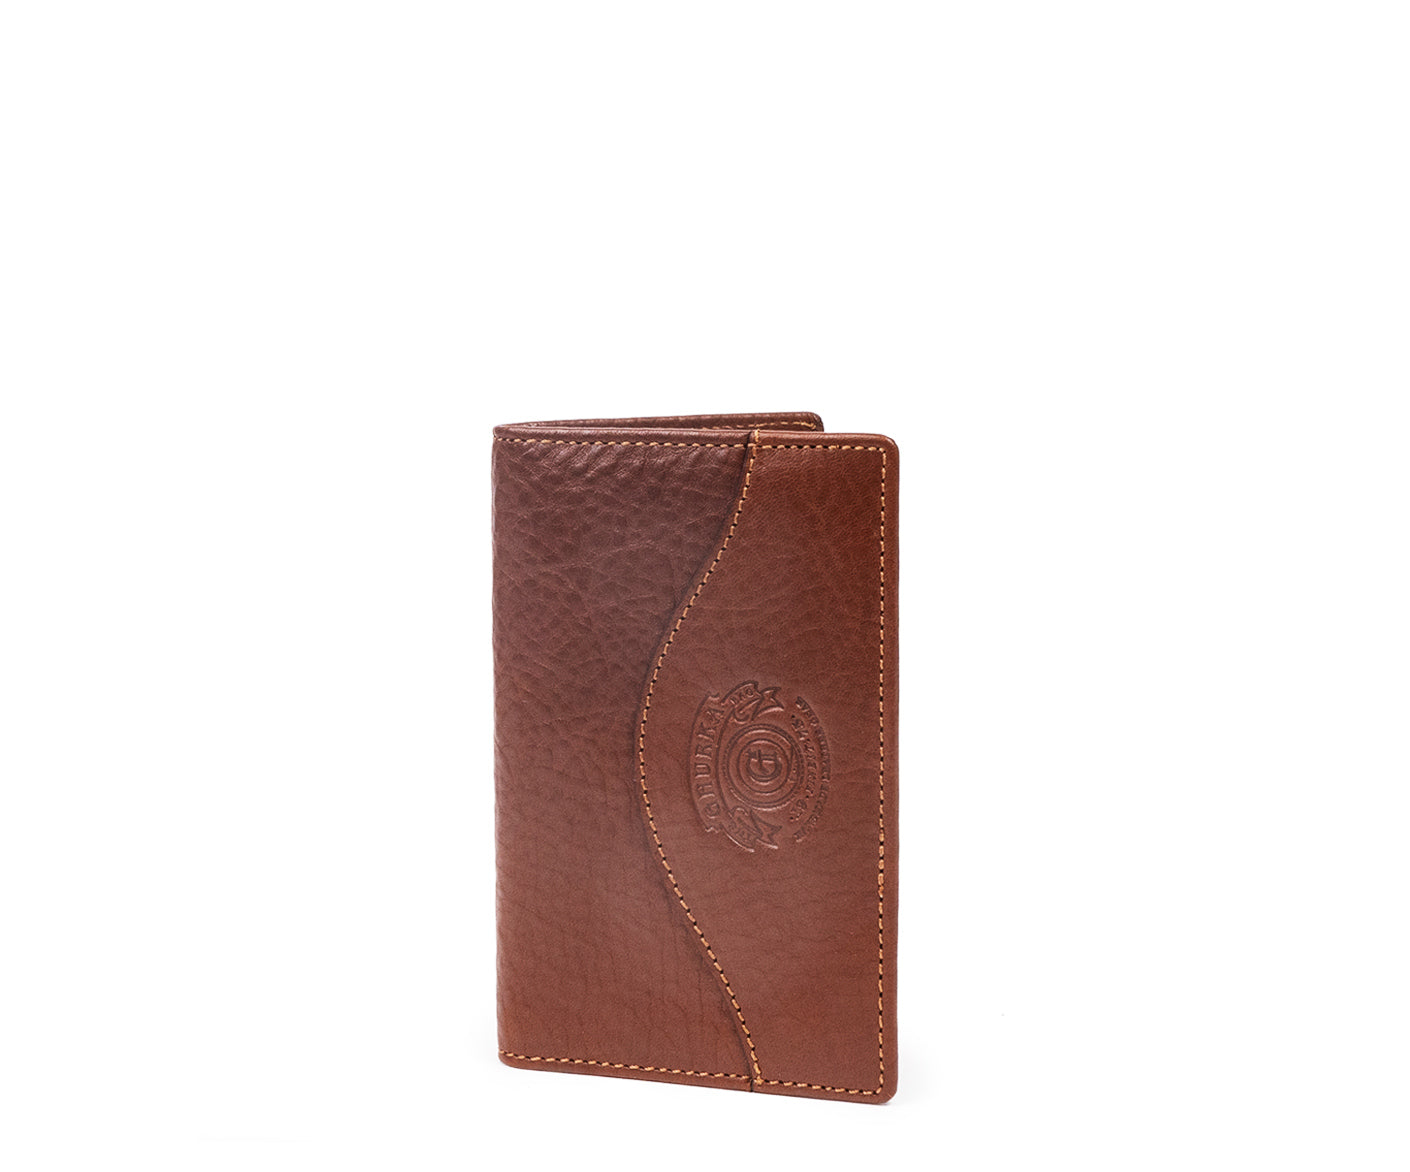 Credit Card Window Wallet No. 202 | Vintage Chestnut Leather